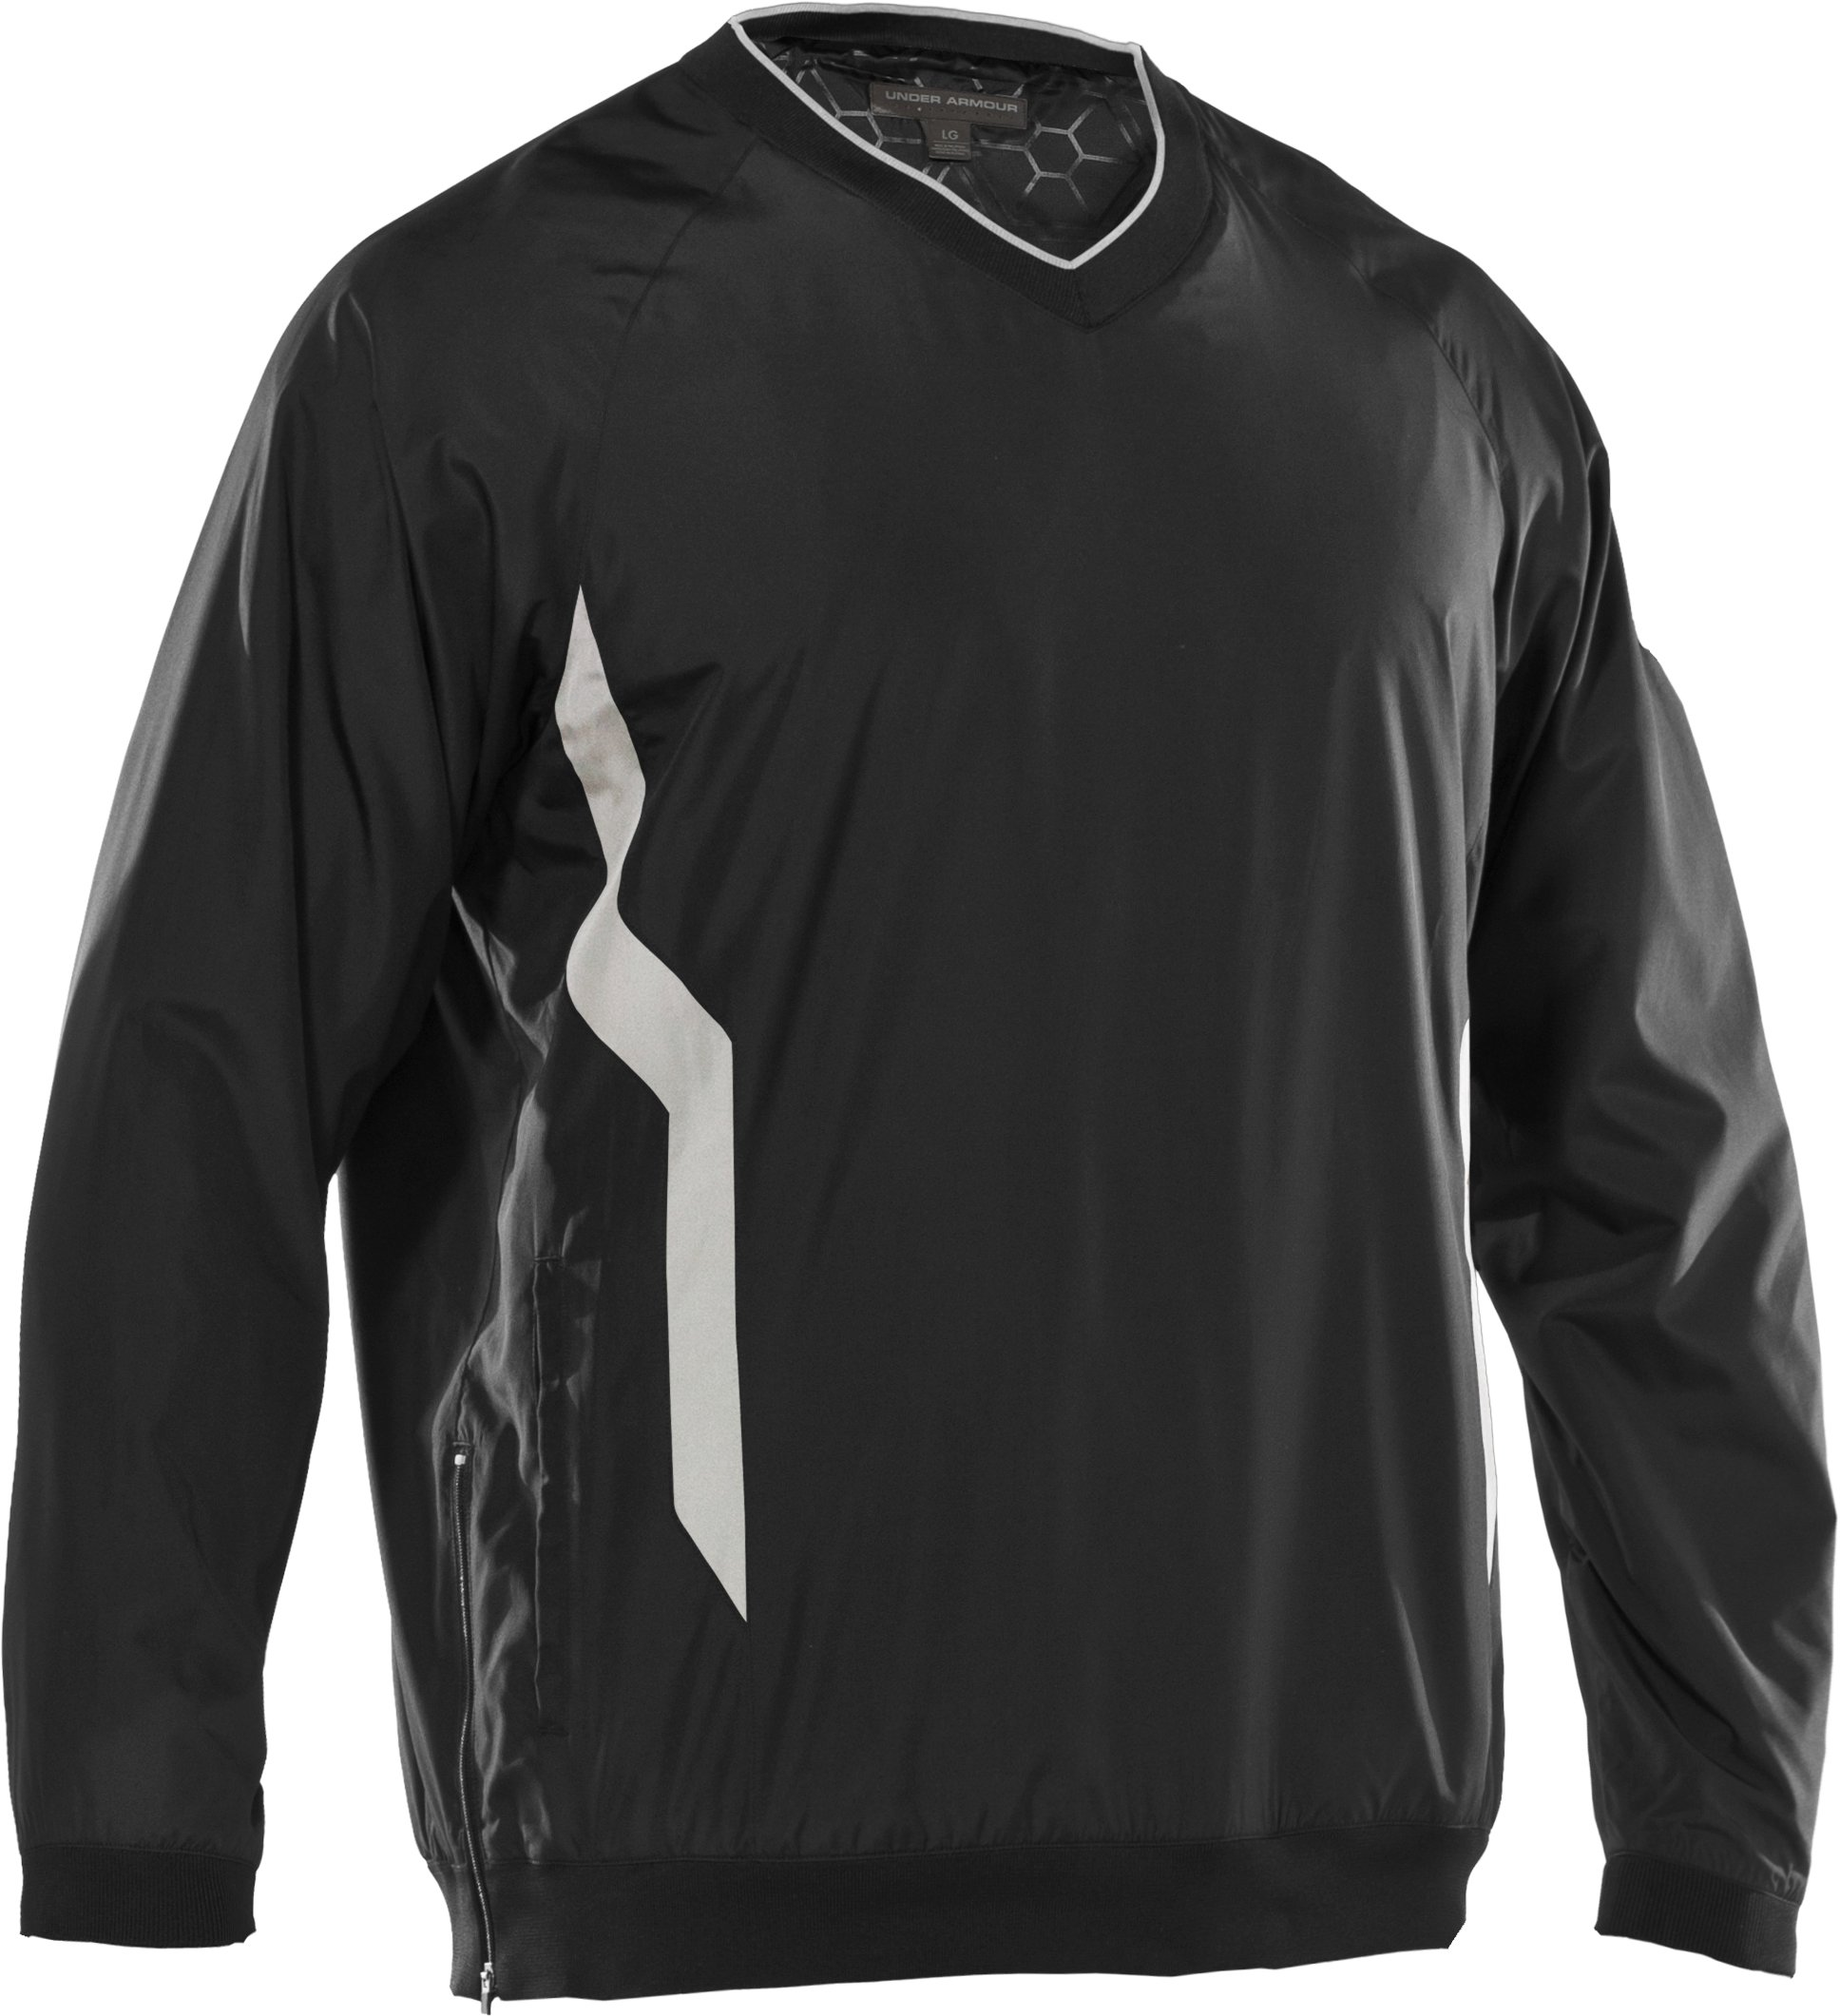 Men's Gamer V-Neck AllSeasonGear® Jacket, Black